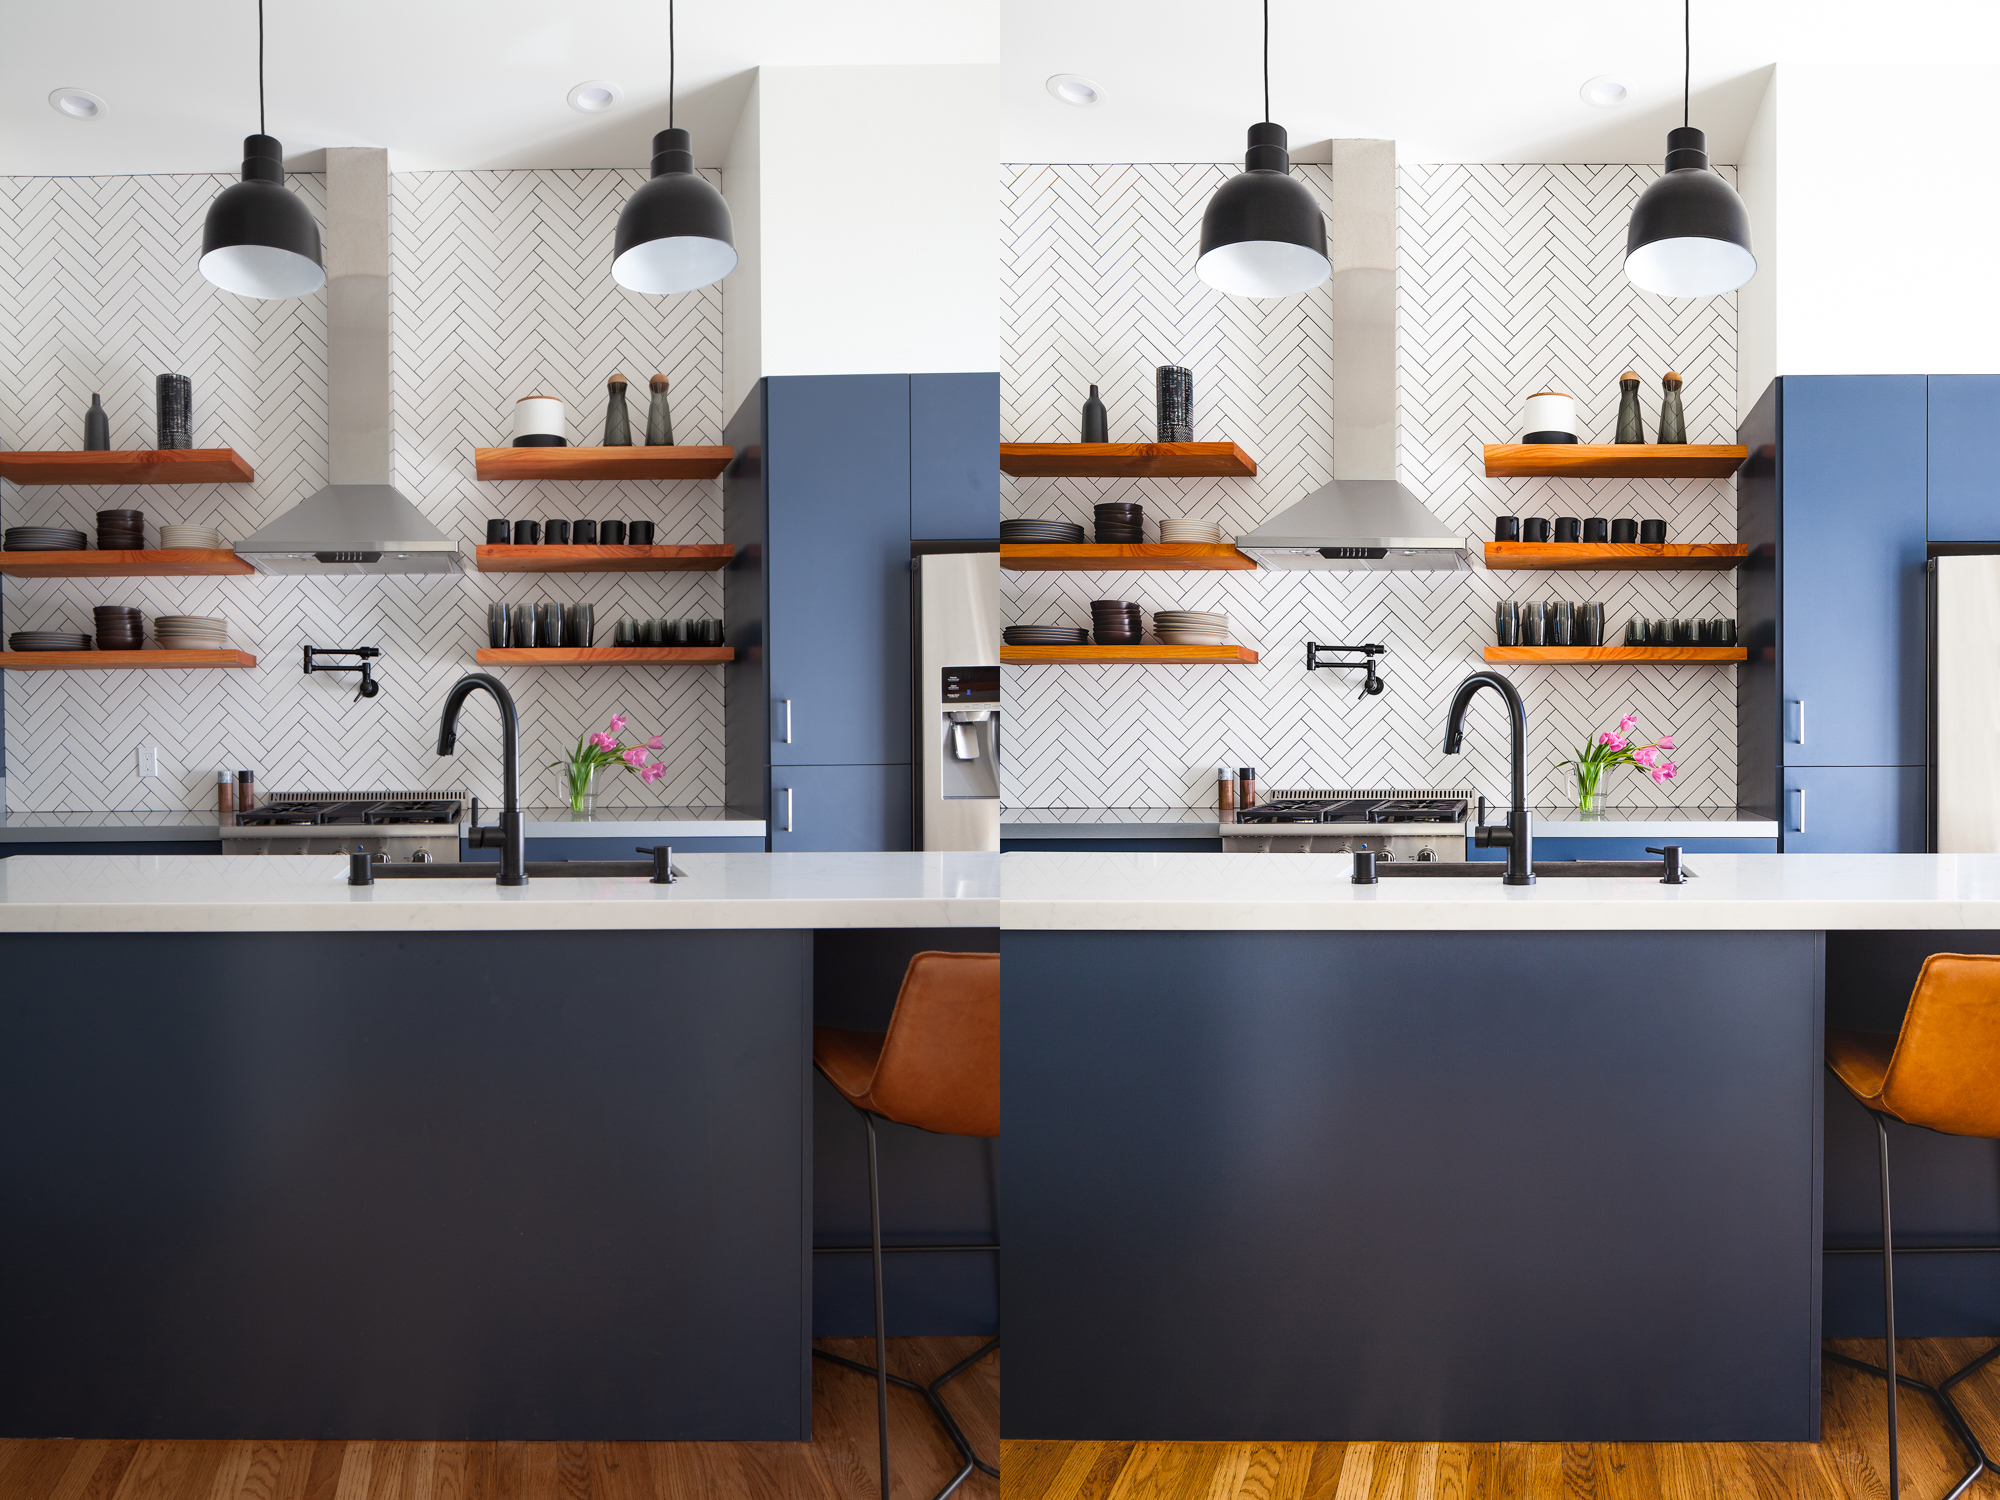 WORK INVOLVED: color correction, multi-image composite, perspectival correction.